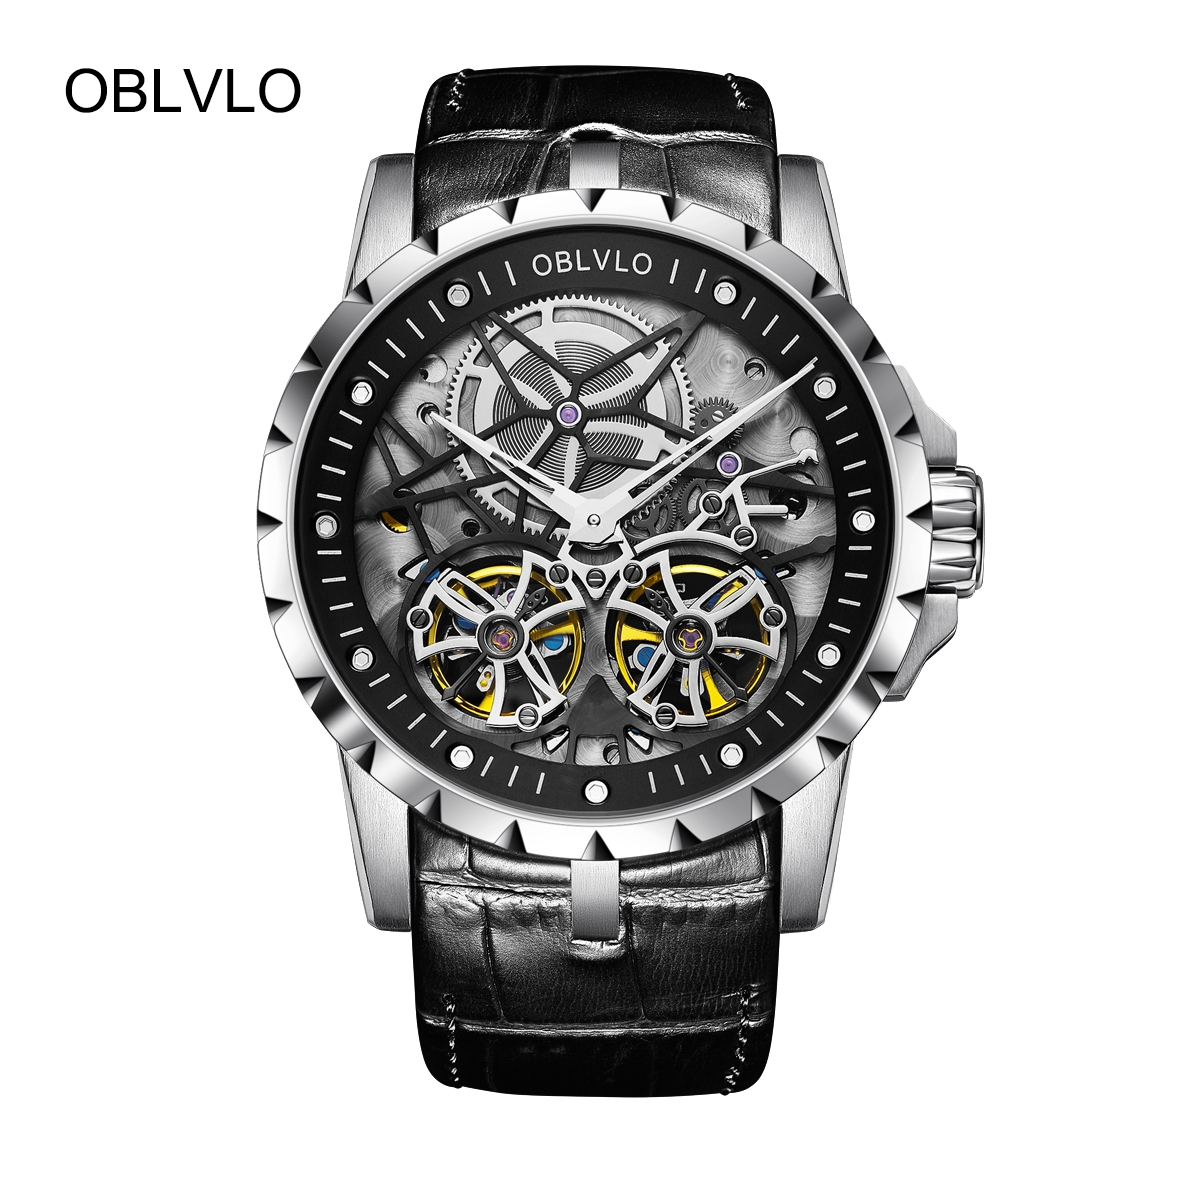 OBLVLO Men's Designer Fashion Tourbillon Watches Transparent Skeleton Leather Mechanical Watch OBL3606SSBB